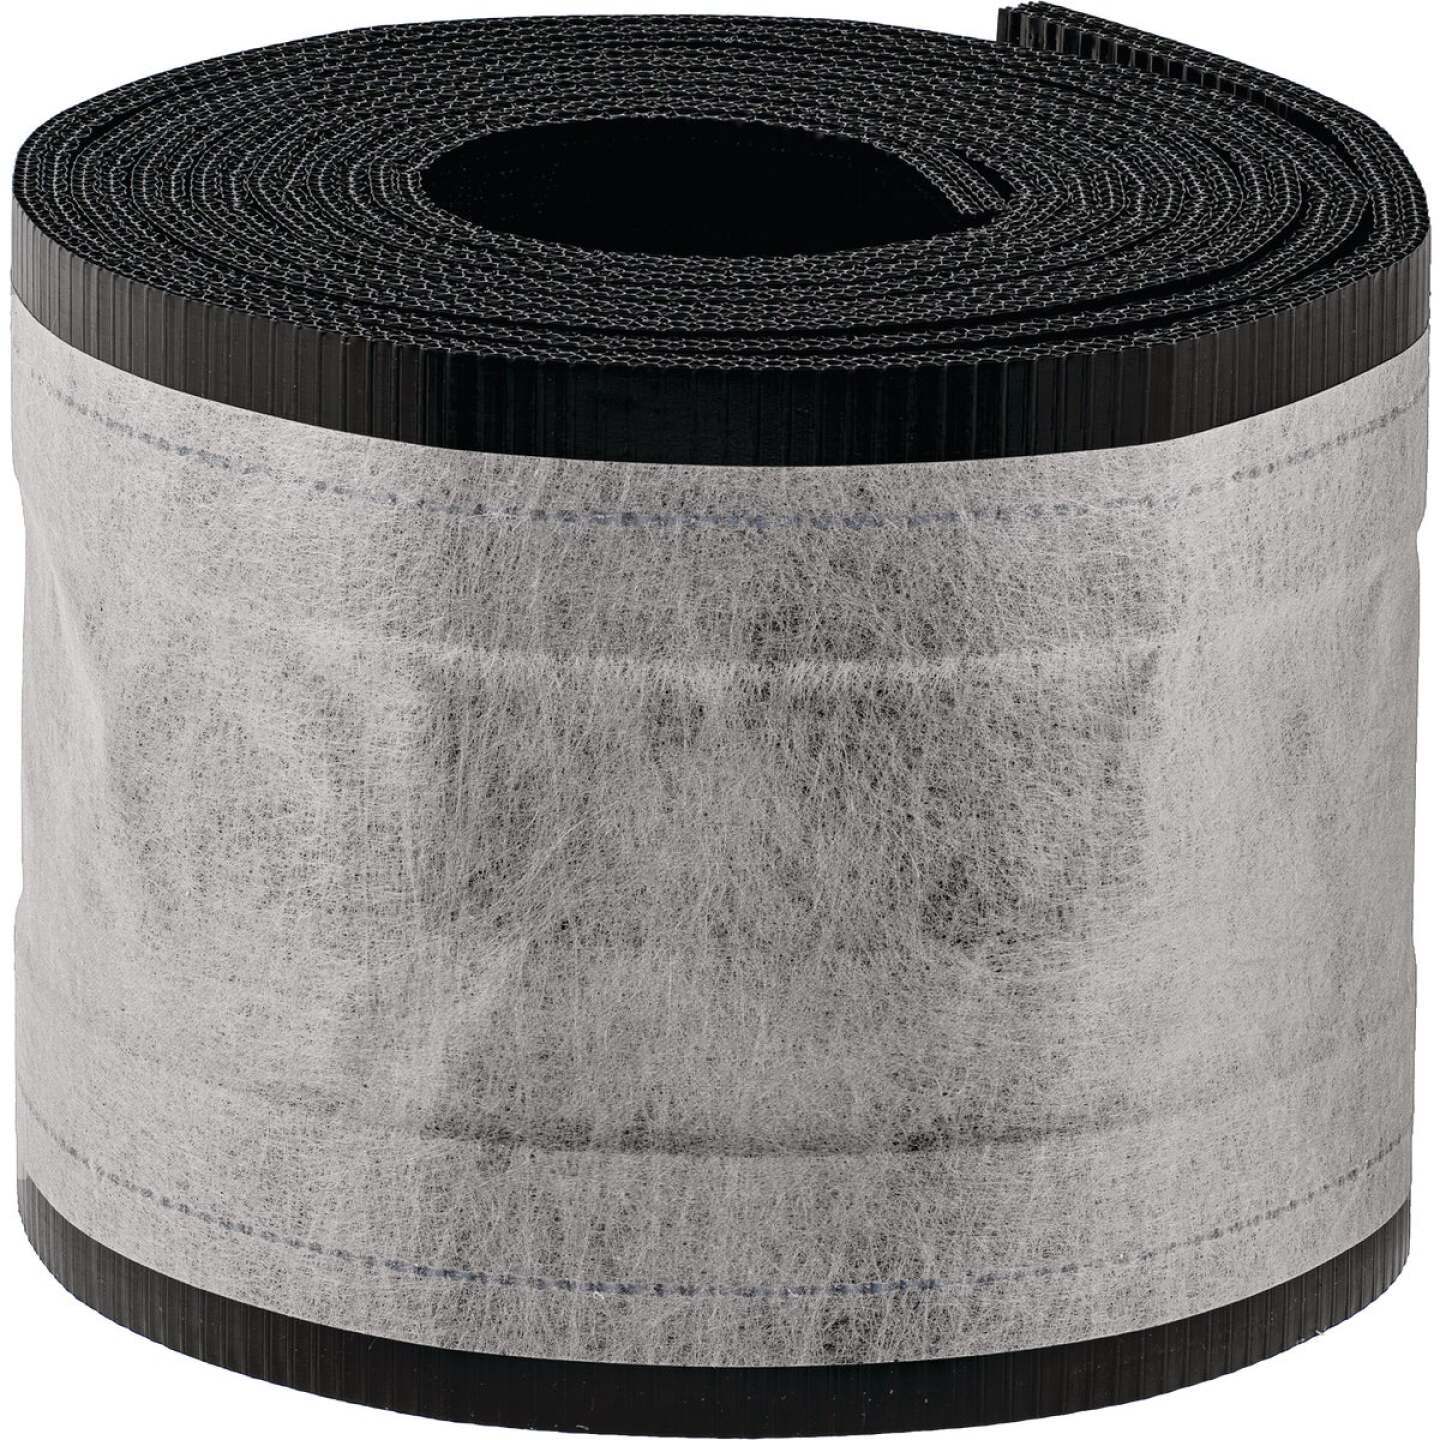 Quarrix 9 In. x 20 Ft. Shingle-Over Rolled Ridge Vent Image 1